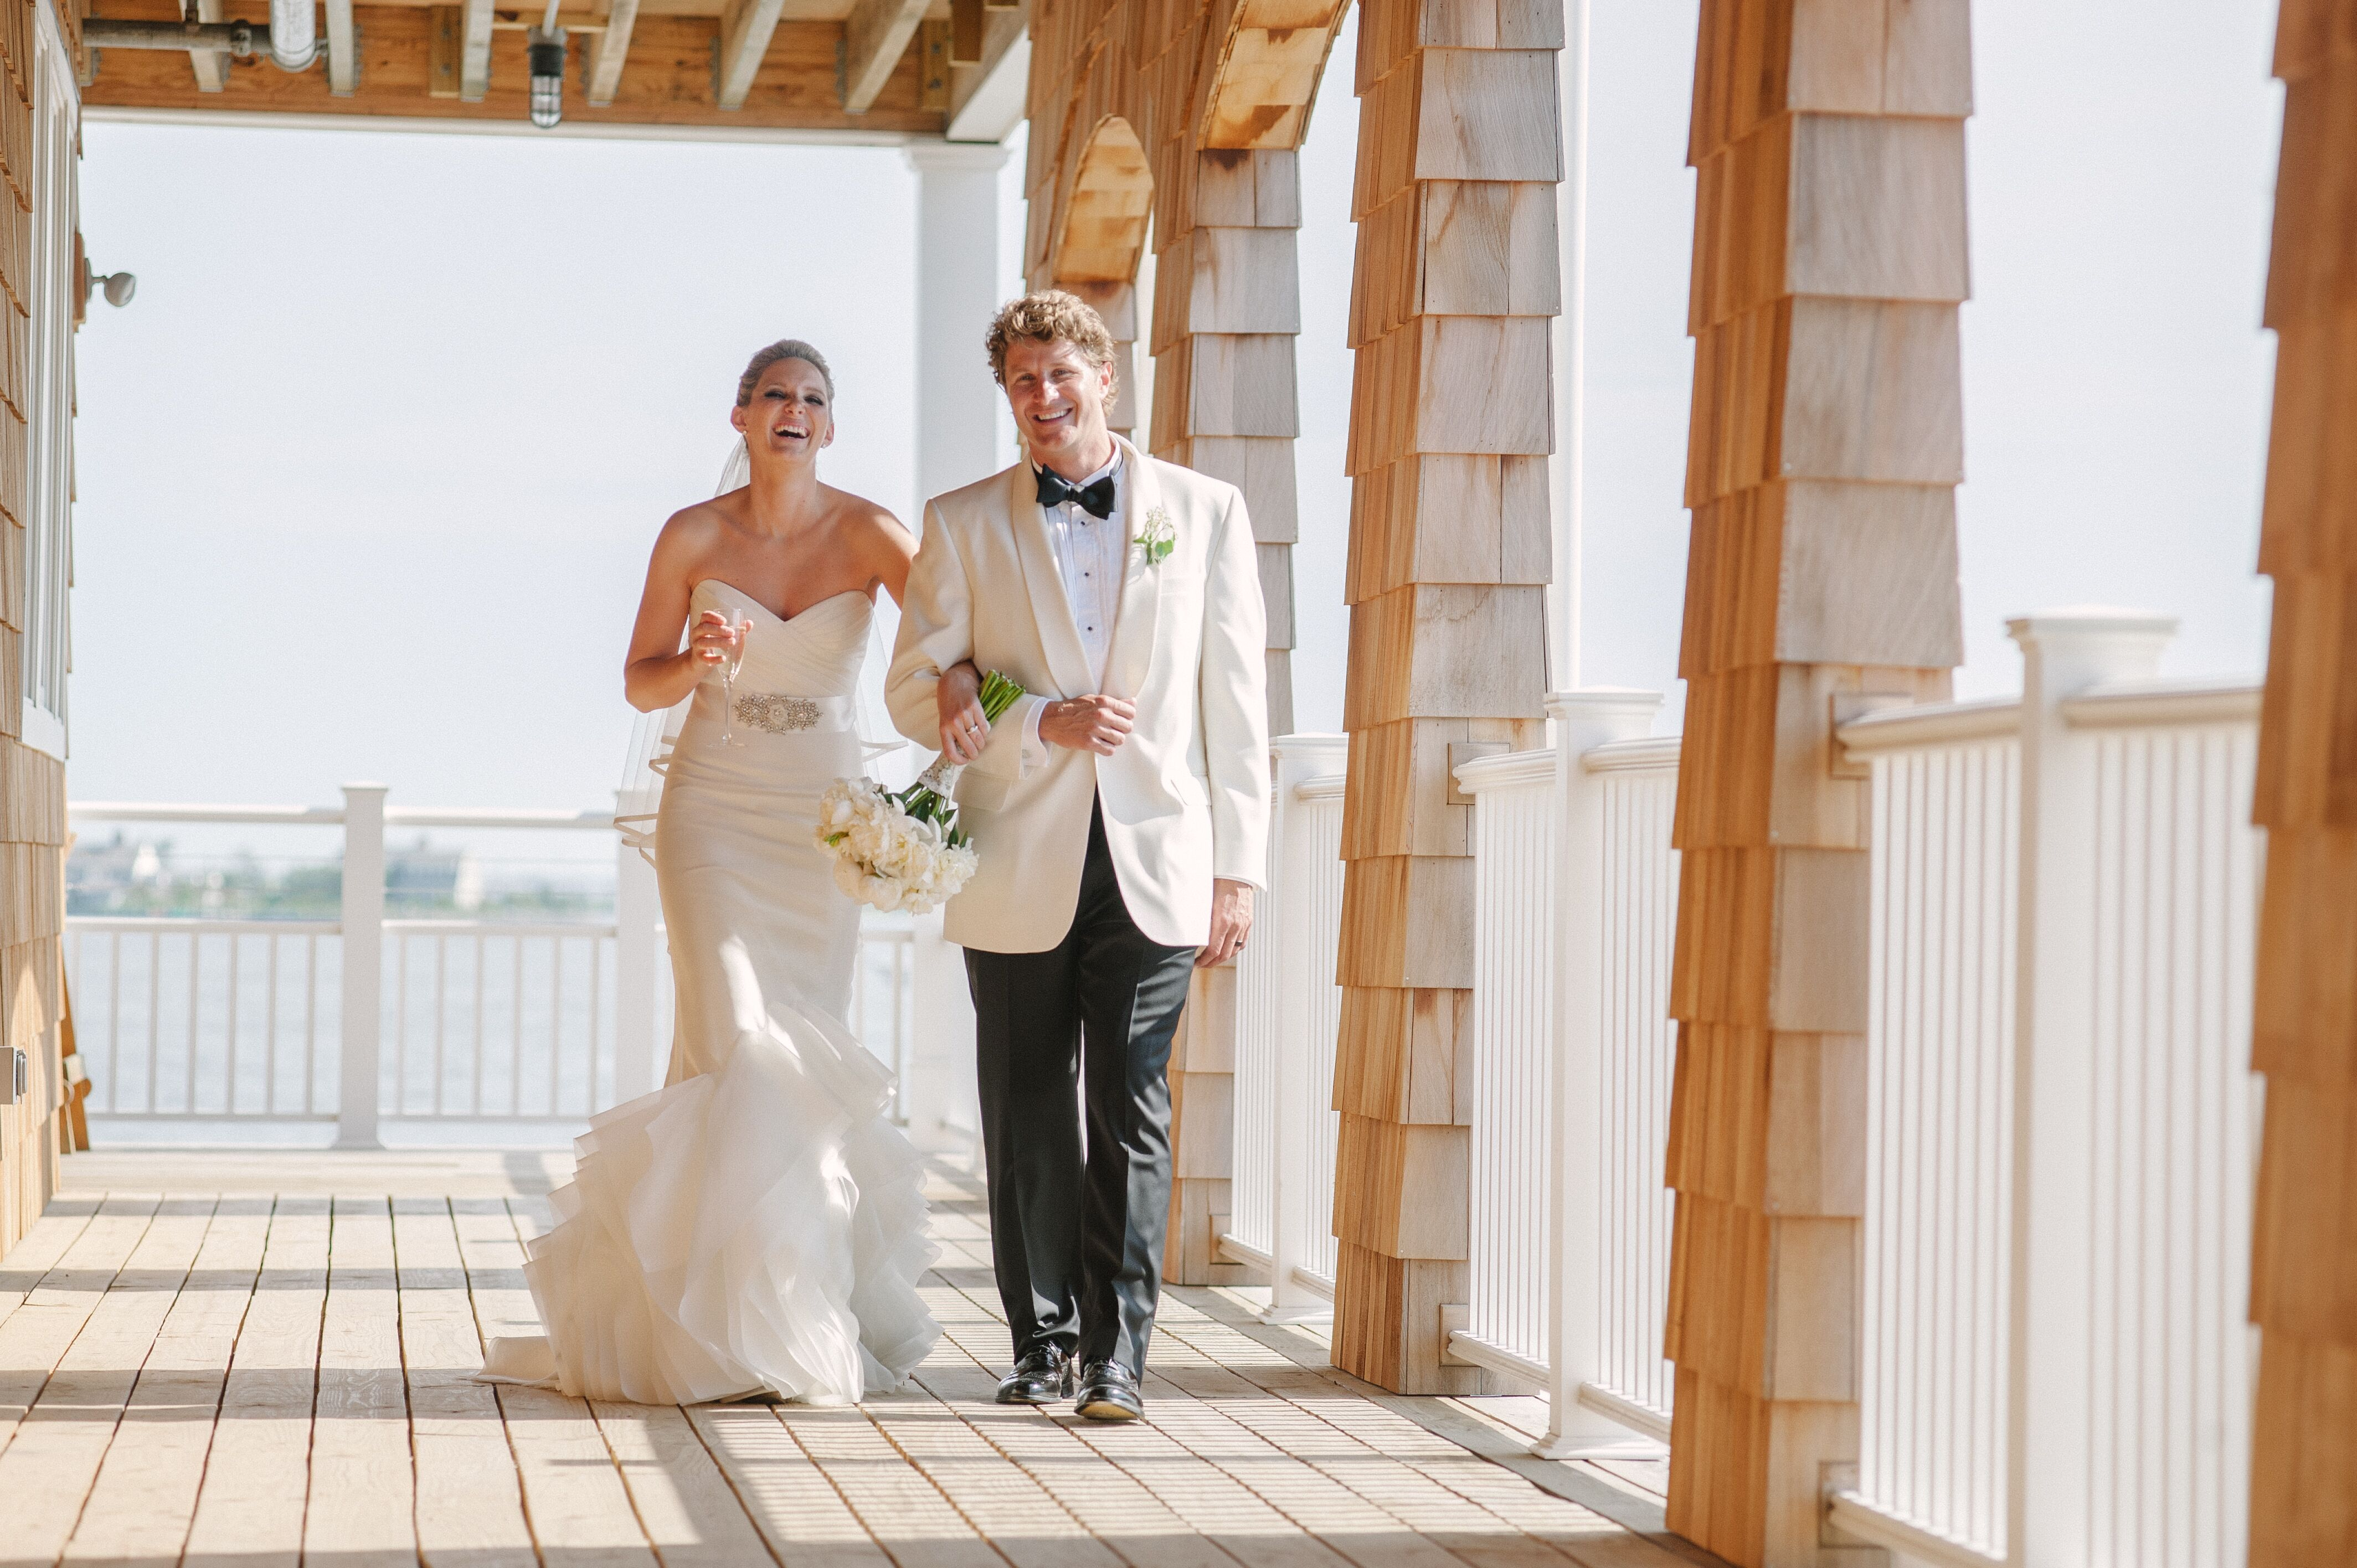 A Rustic Barn Wedding With A Vintage, Nautical Twist At